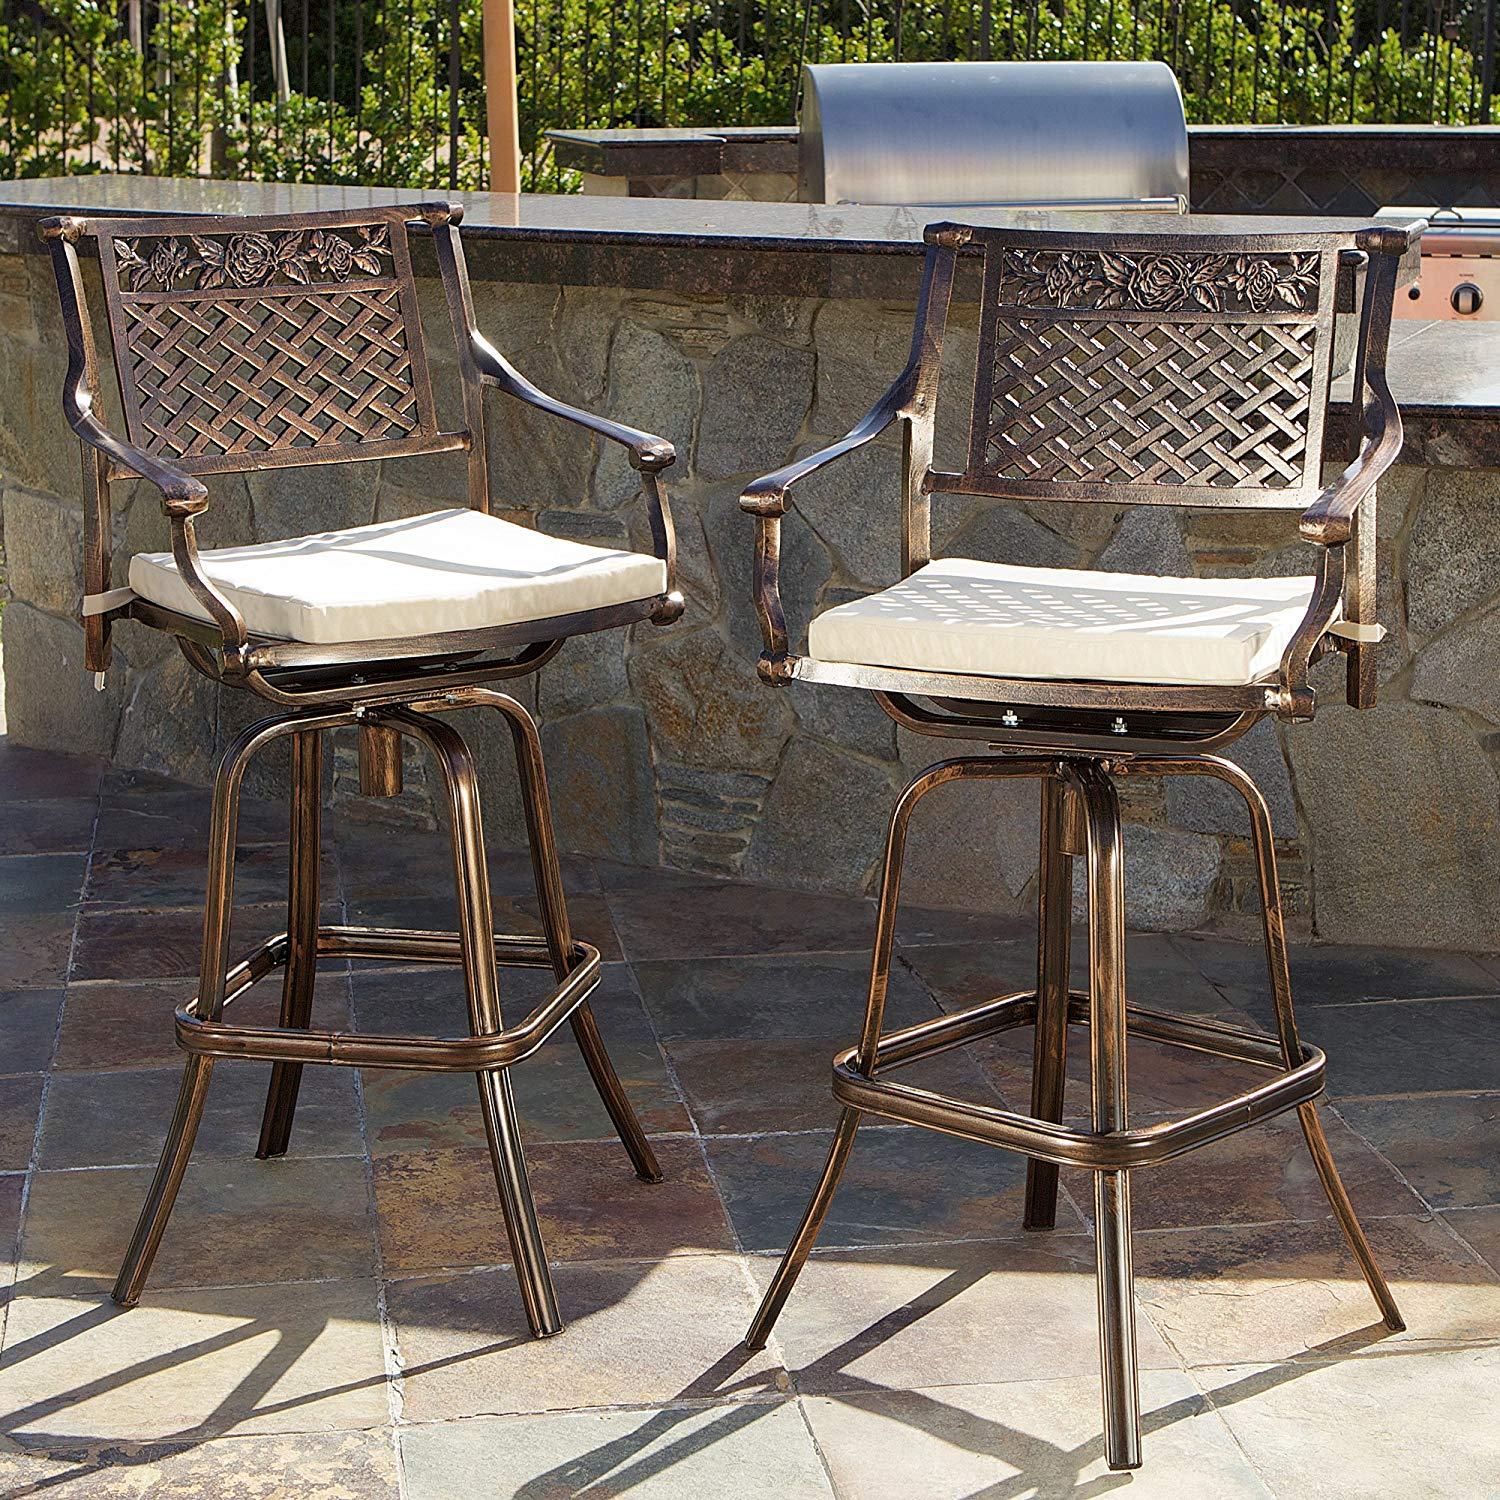 outdoor bar stools amazon.com : sierra outdoor cast aluminum swivel bar stools w/cushion (set JOVUNUV